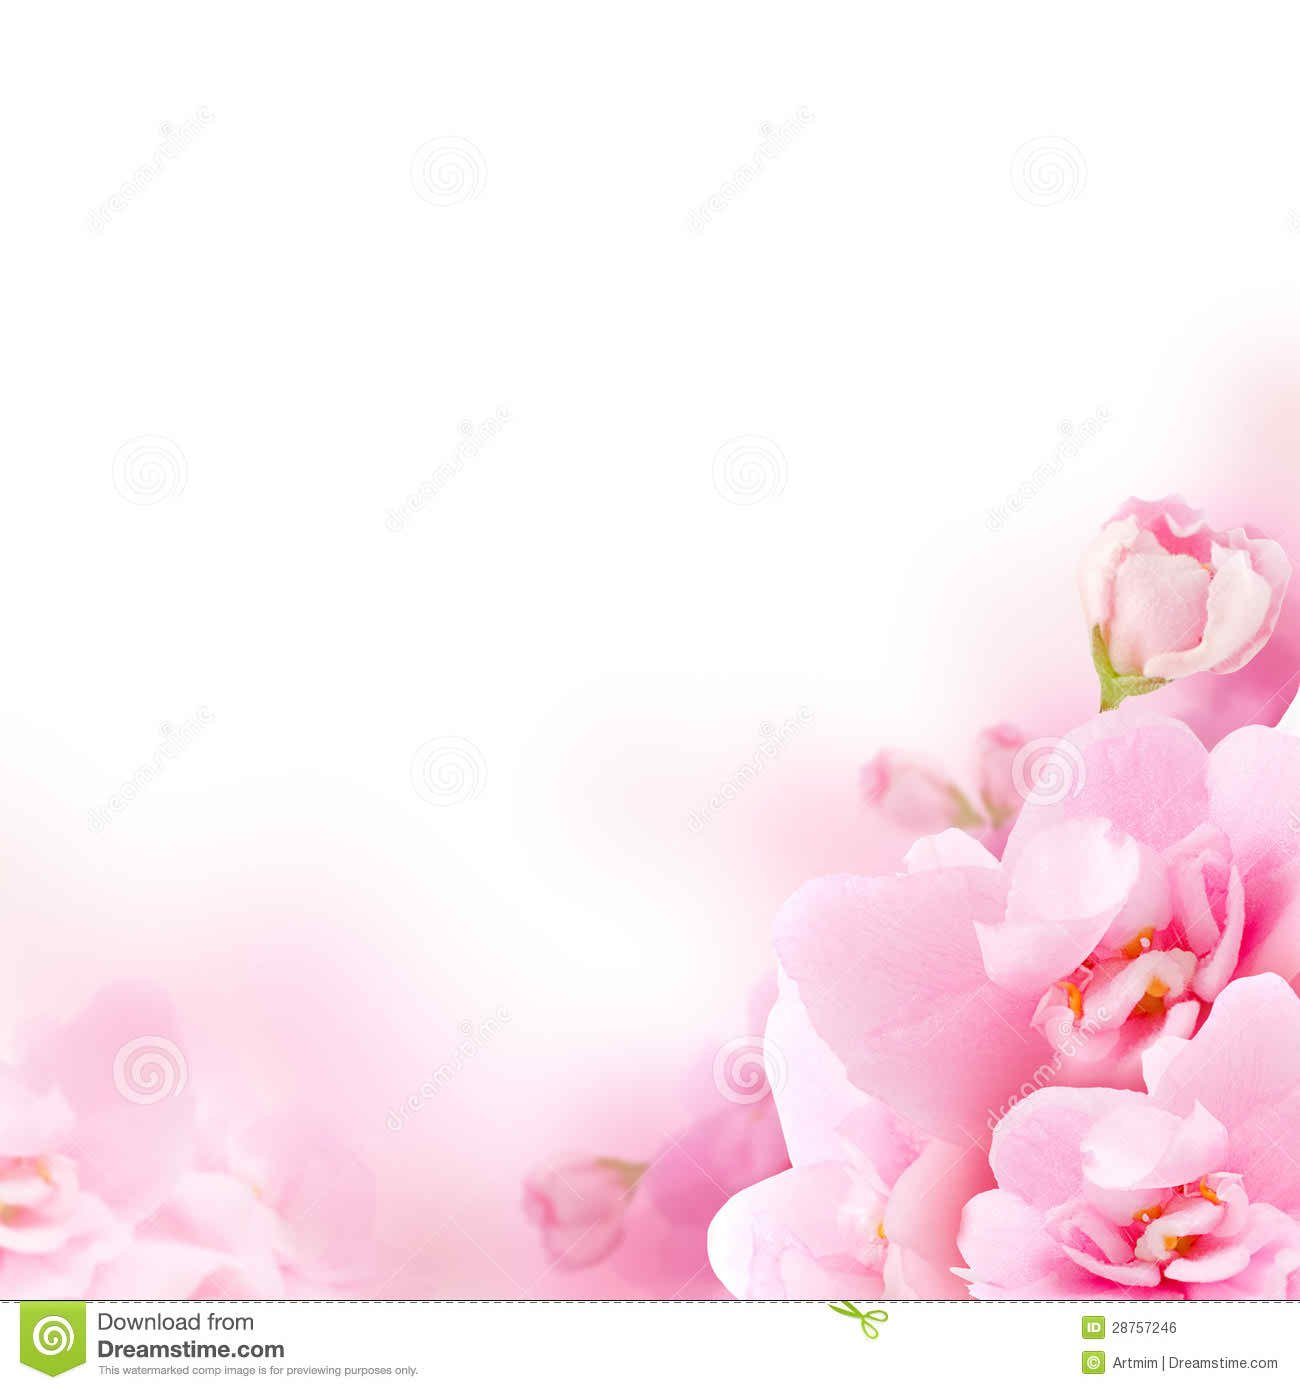 pink flower white background wallpapersafari